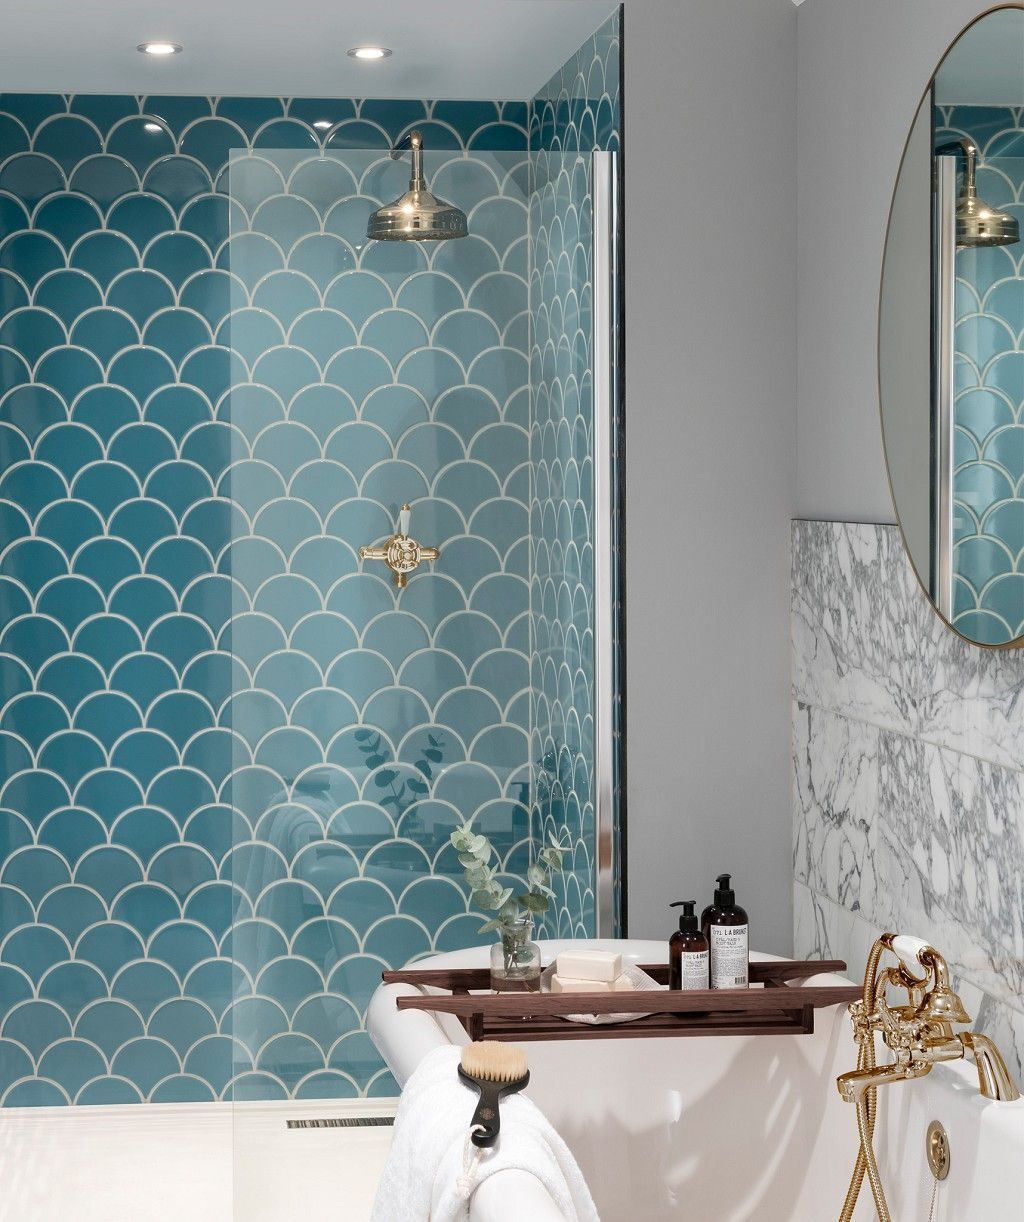 Five Bathroom Tile Ideas For Small Bathroom | Interiors, Tile ideas ...